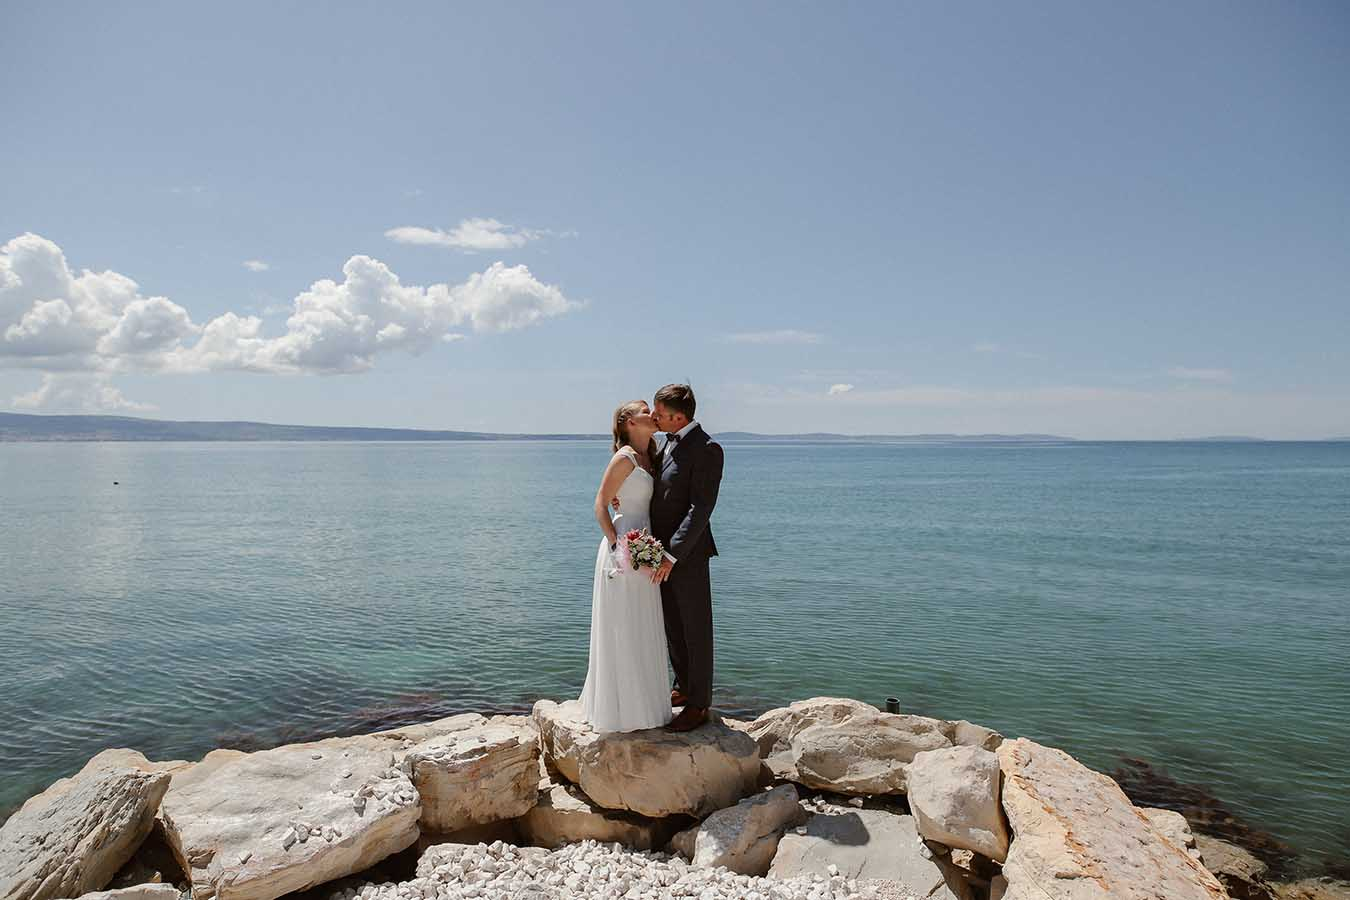 hilke thomas beach elopement wedding croatia | Croatia Elopement Photographer and Videographer